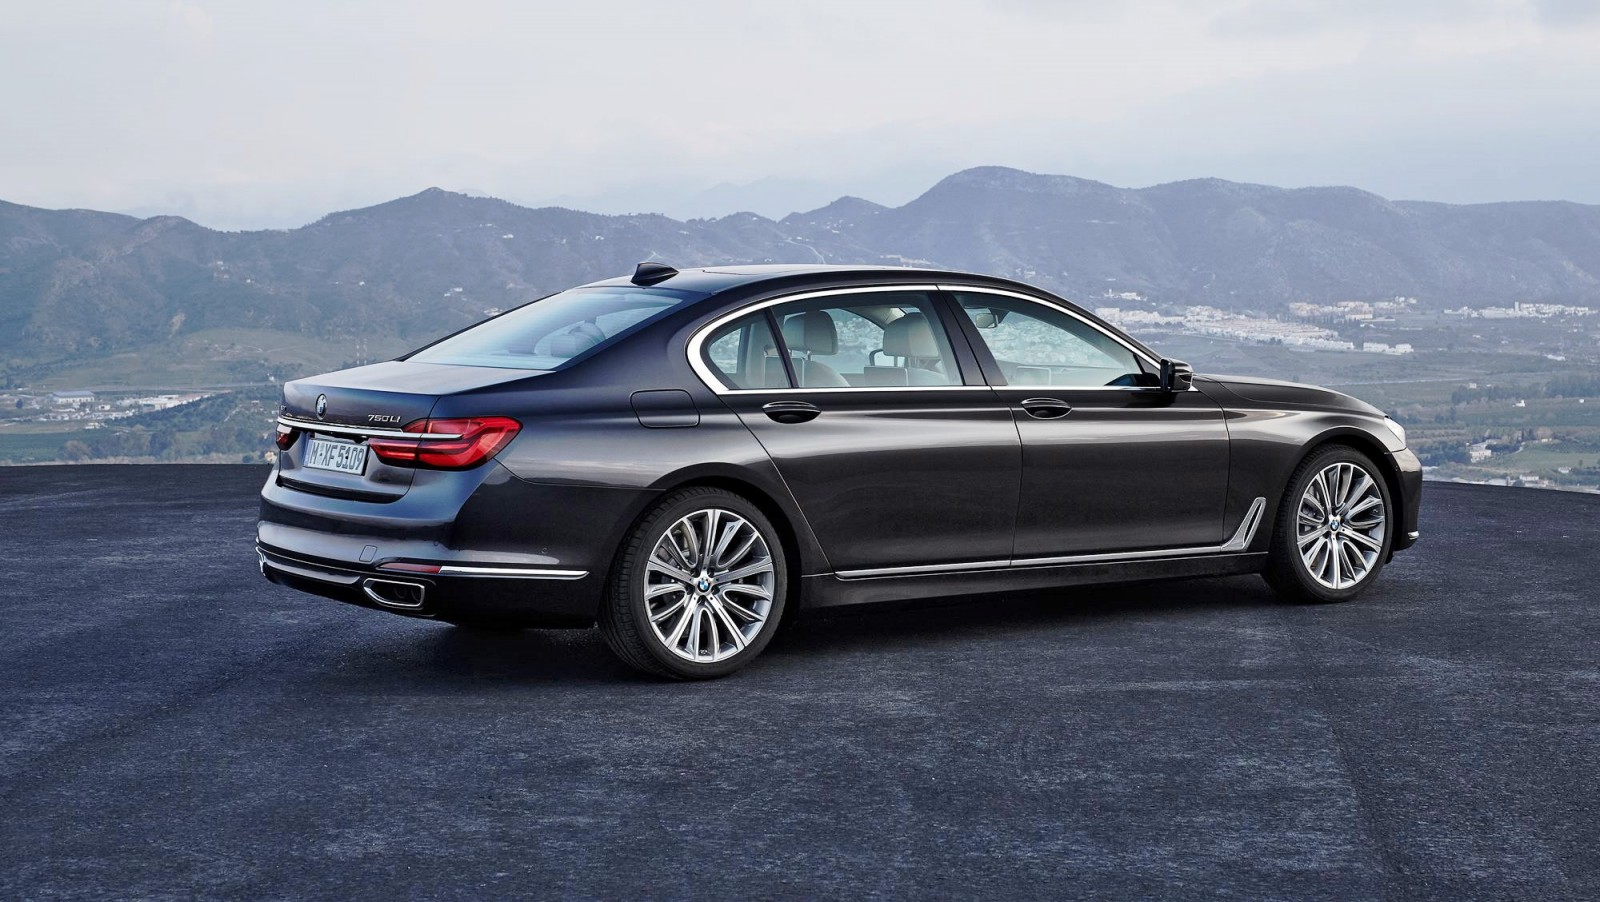 2016 BMW 750 Exterior Photos 14